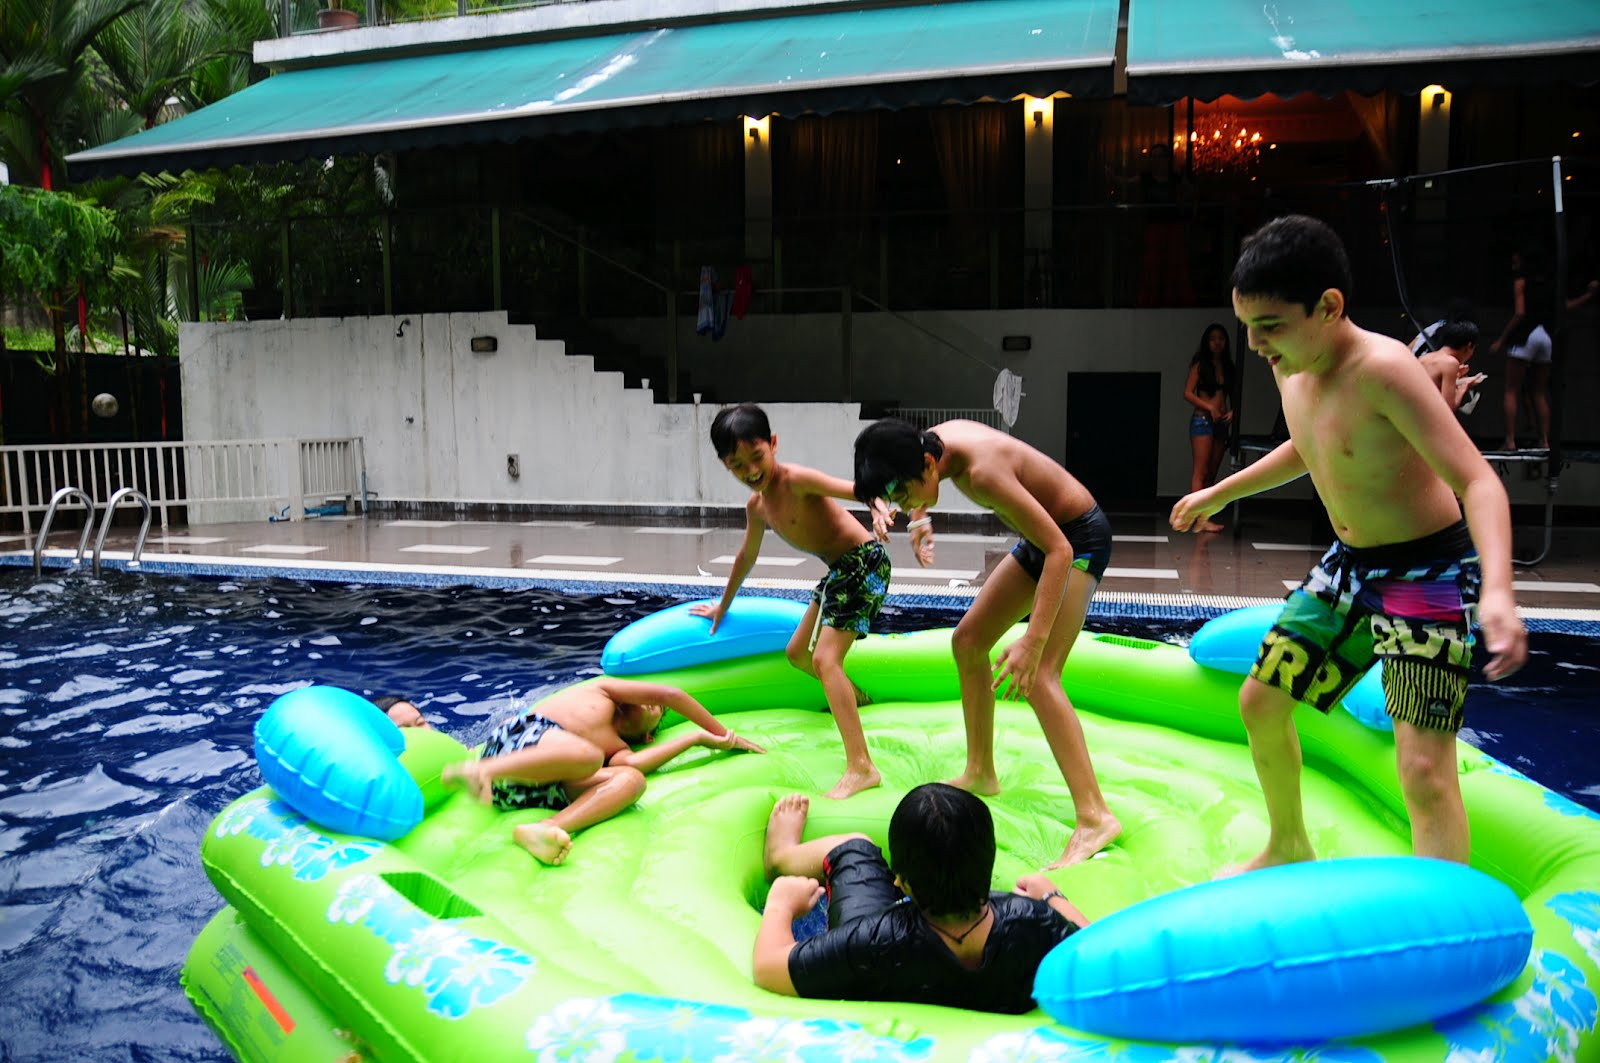 Event Directus Pool Party Fun For Kids Teens Amp Adults